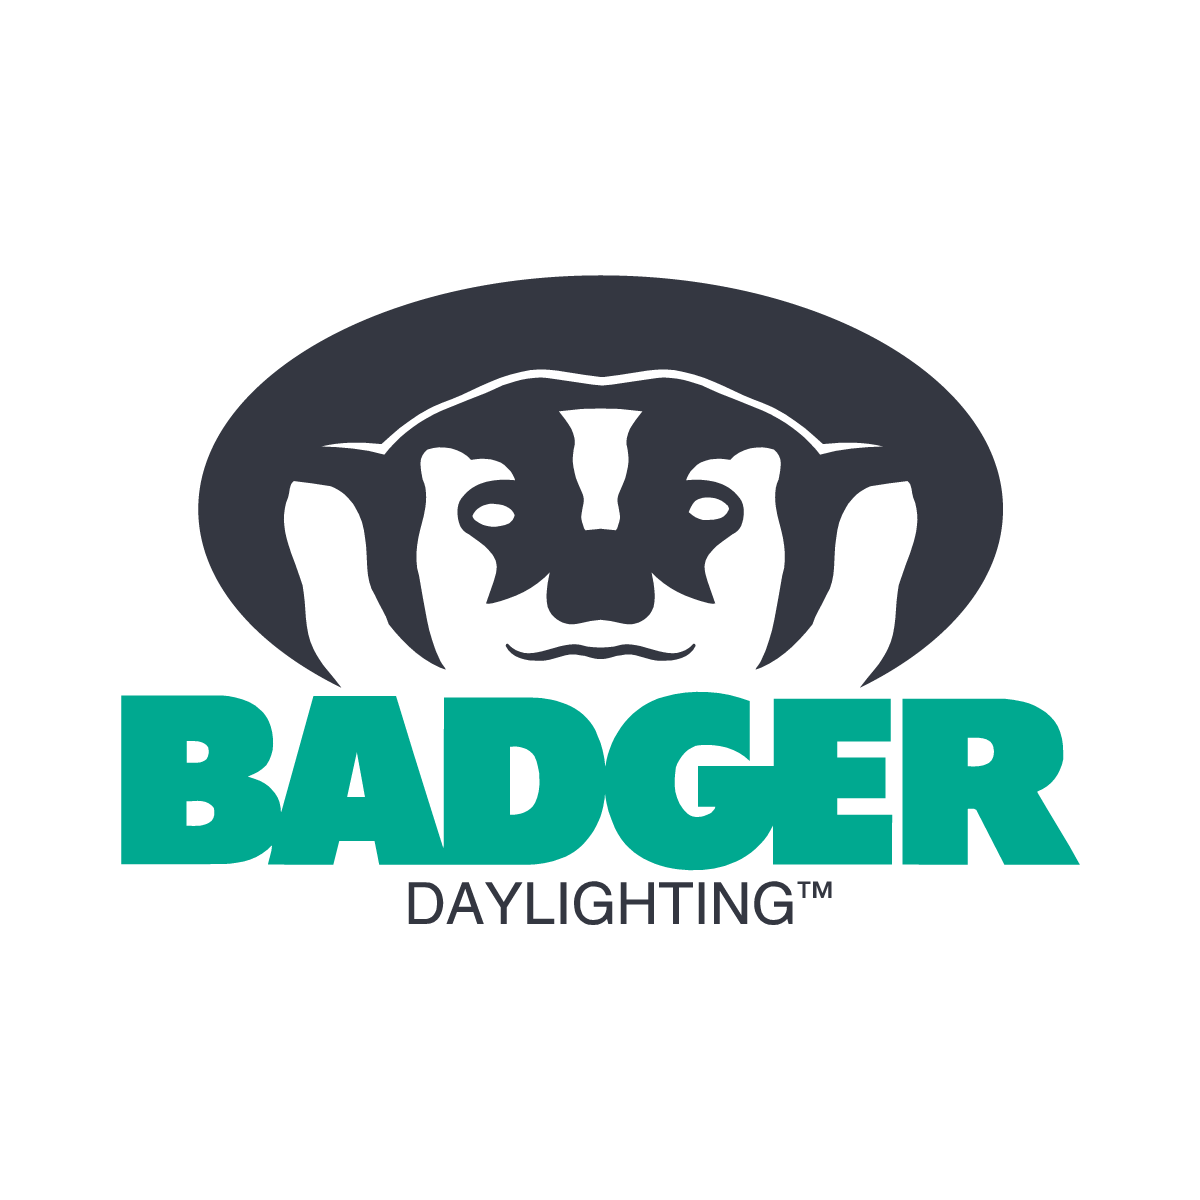 Badger Daylighting™ - Hydrovac Services (Non-Destructive Excavation) Company In Canada And The USA